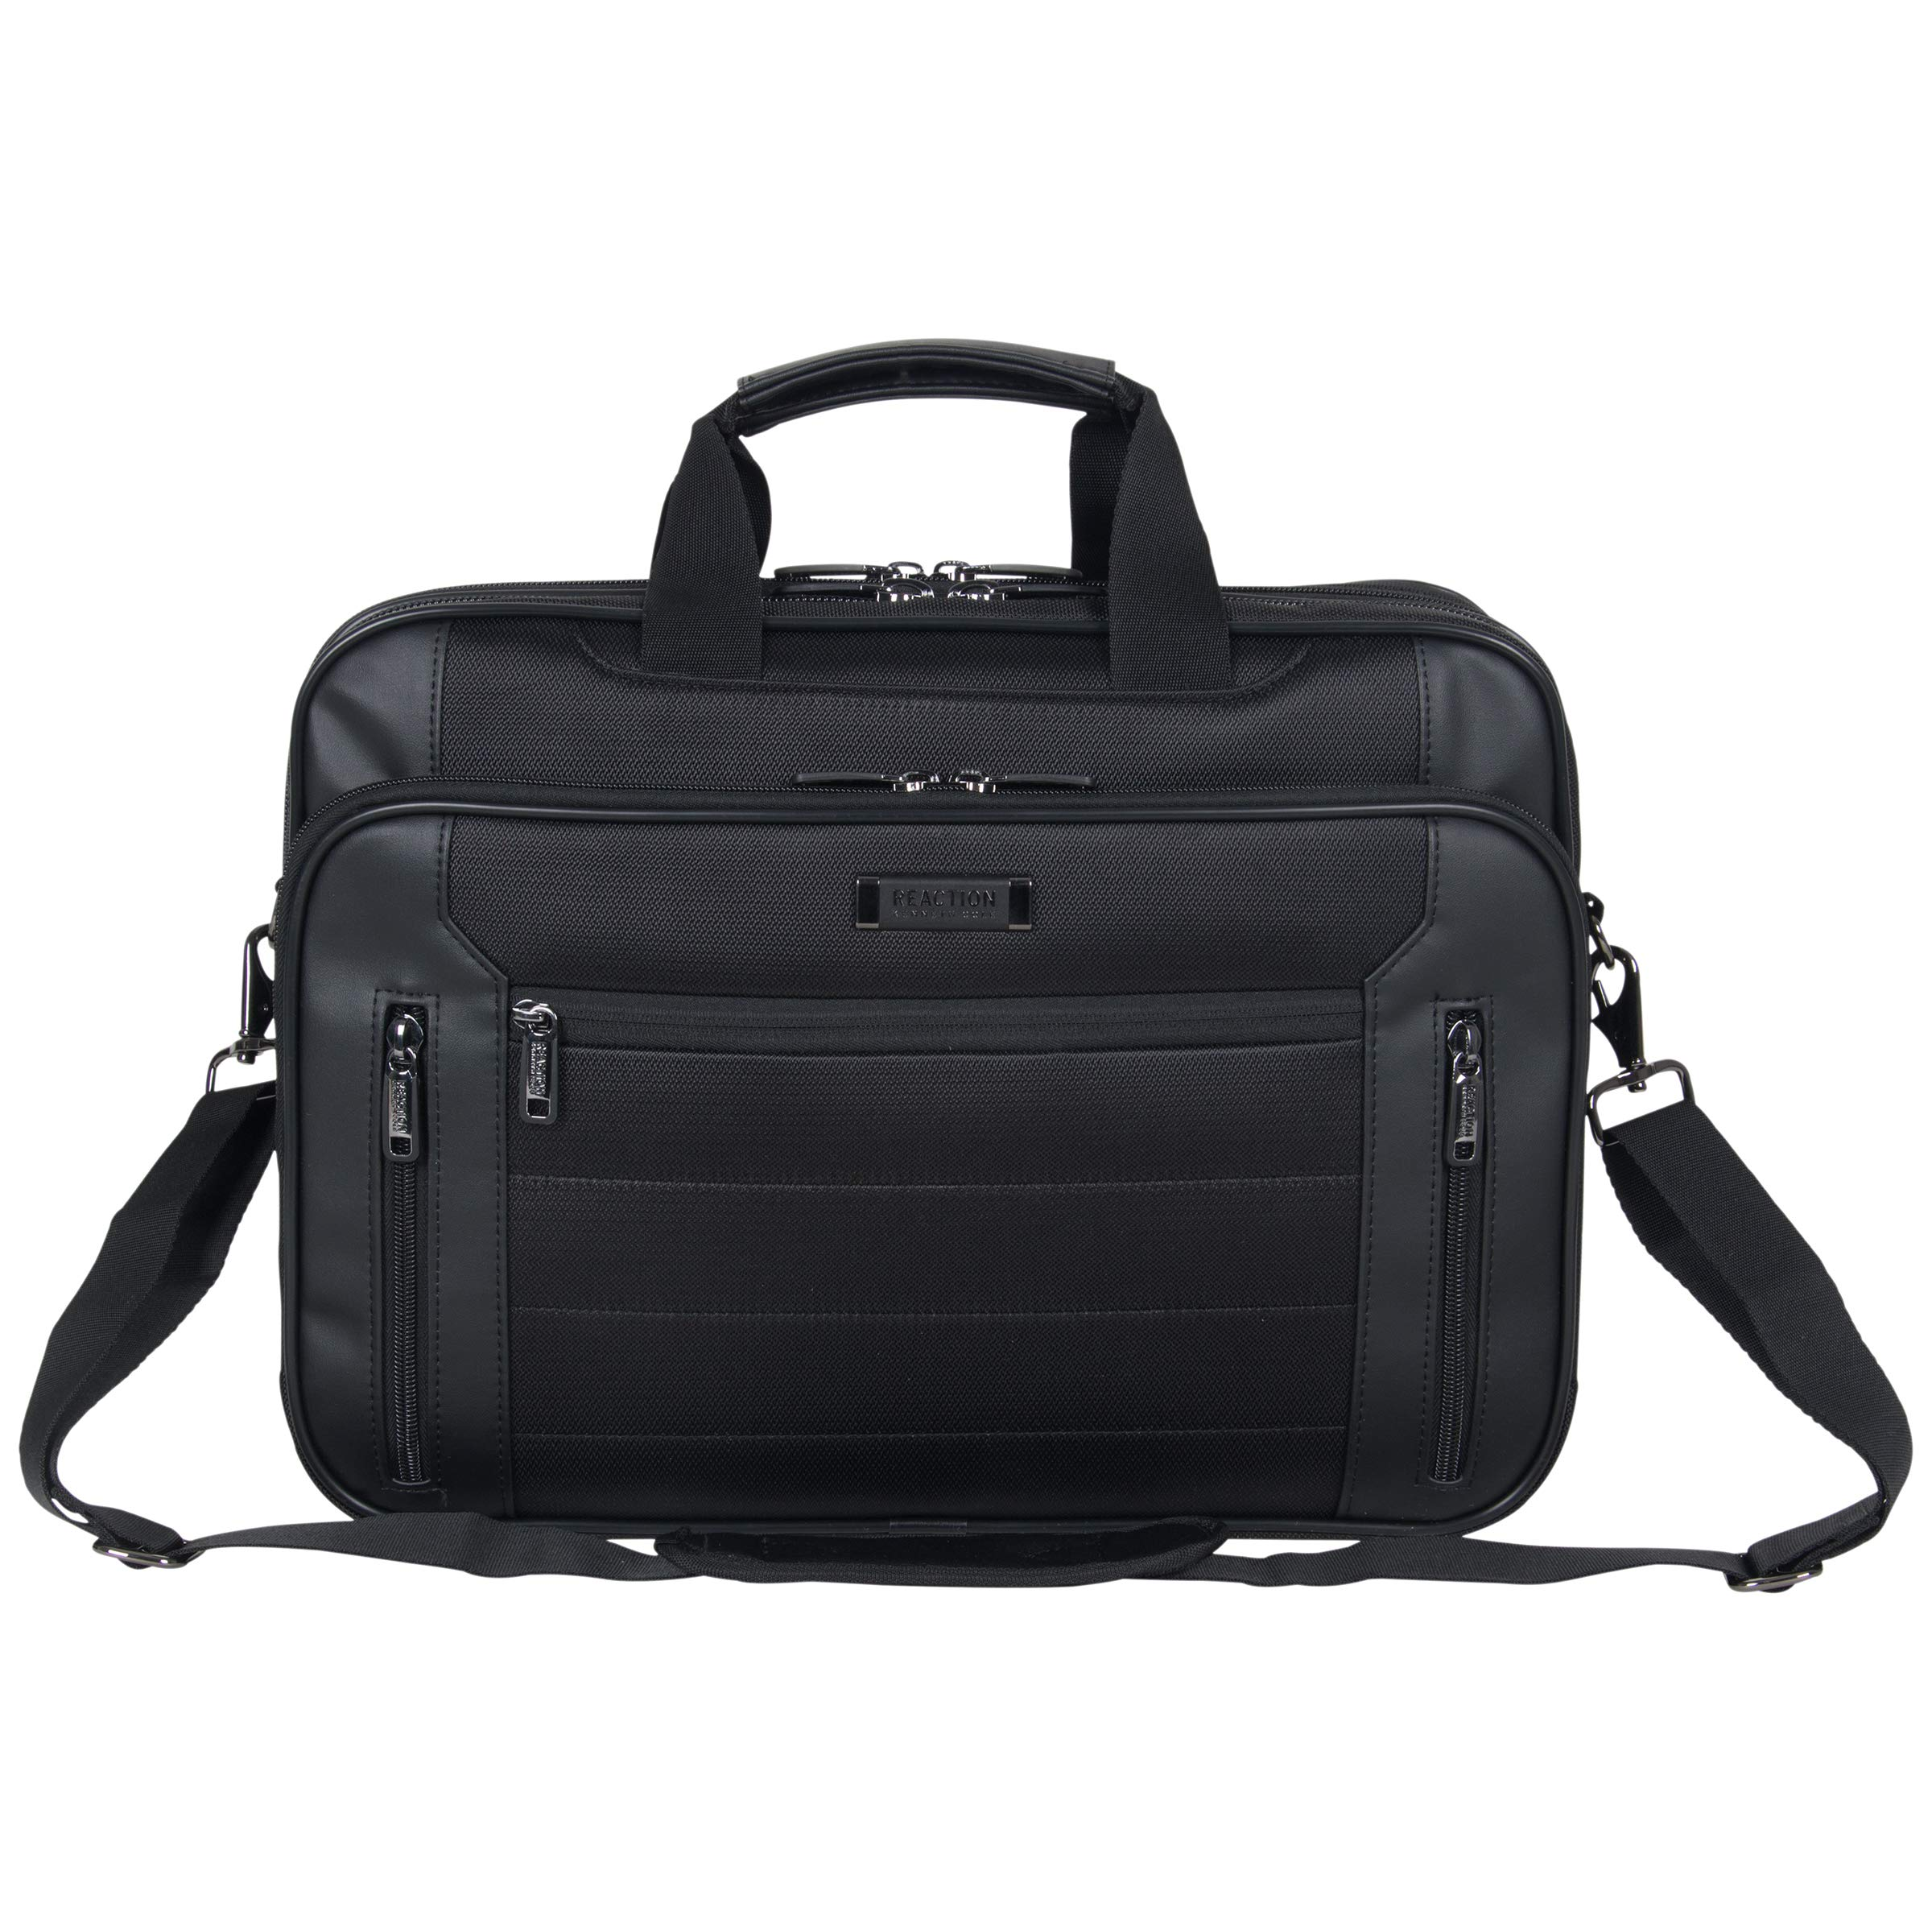 Kenneth Cole Reaction Keystone 1680d Polyester Dual Compartment 17'' Laptop Business Portfolio, Black by Kenneth Cole REACTION